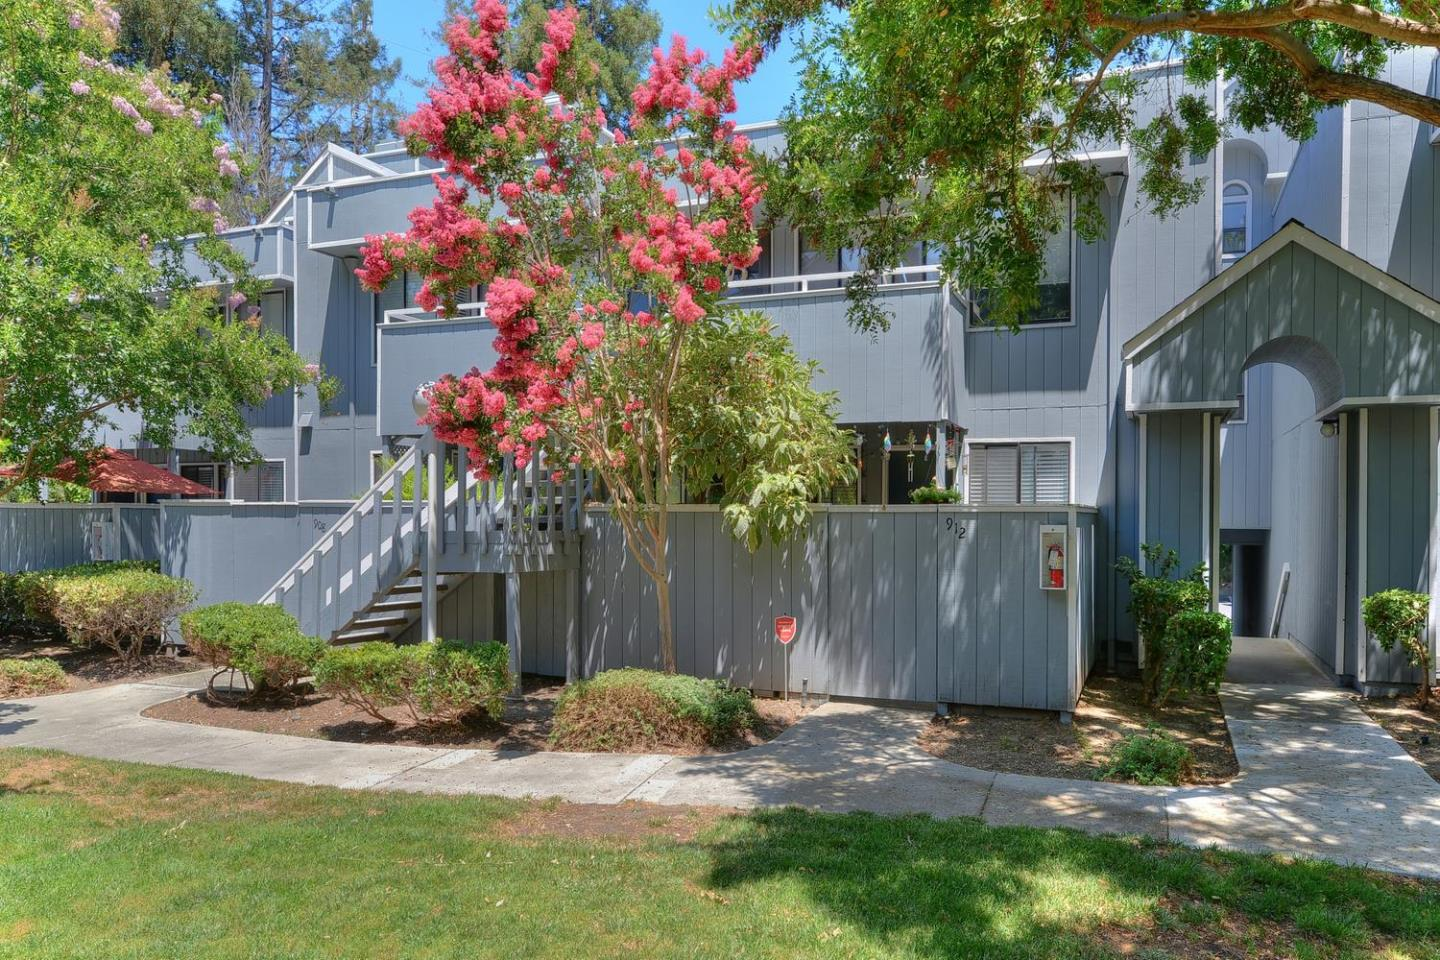 Additional photo for property listing at 910 La Barbera Drive  San Jose, Kalifornien 95126 Vereinigte Staaten